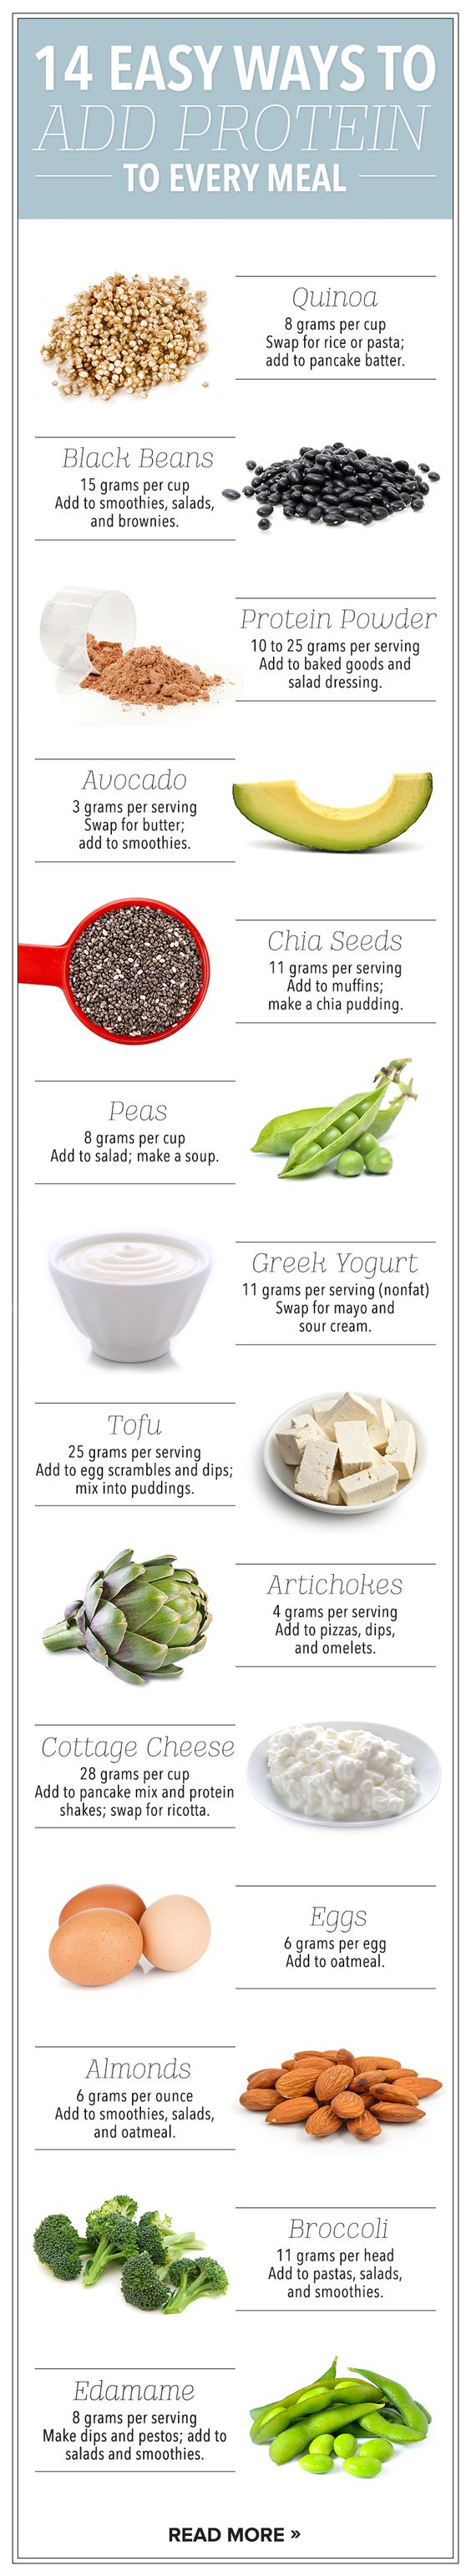 easy ways to add protein to every meal